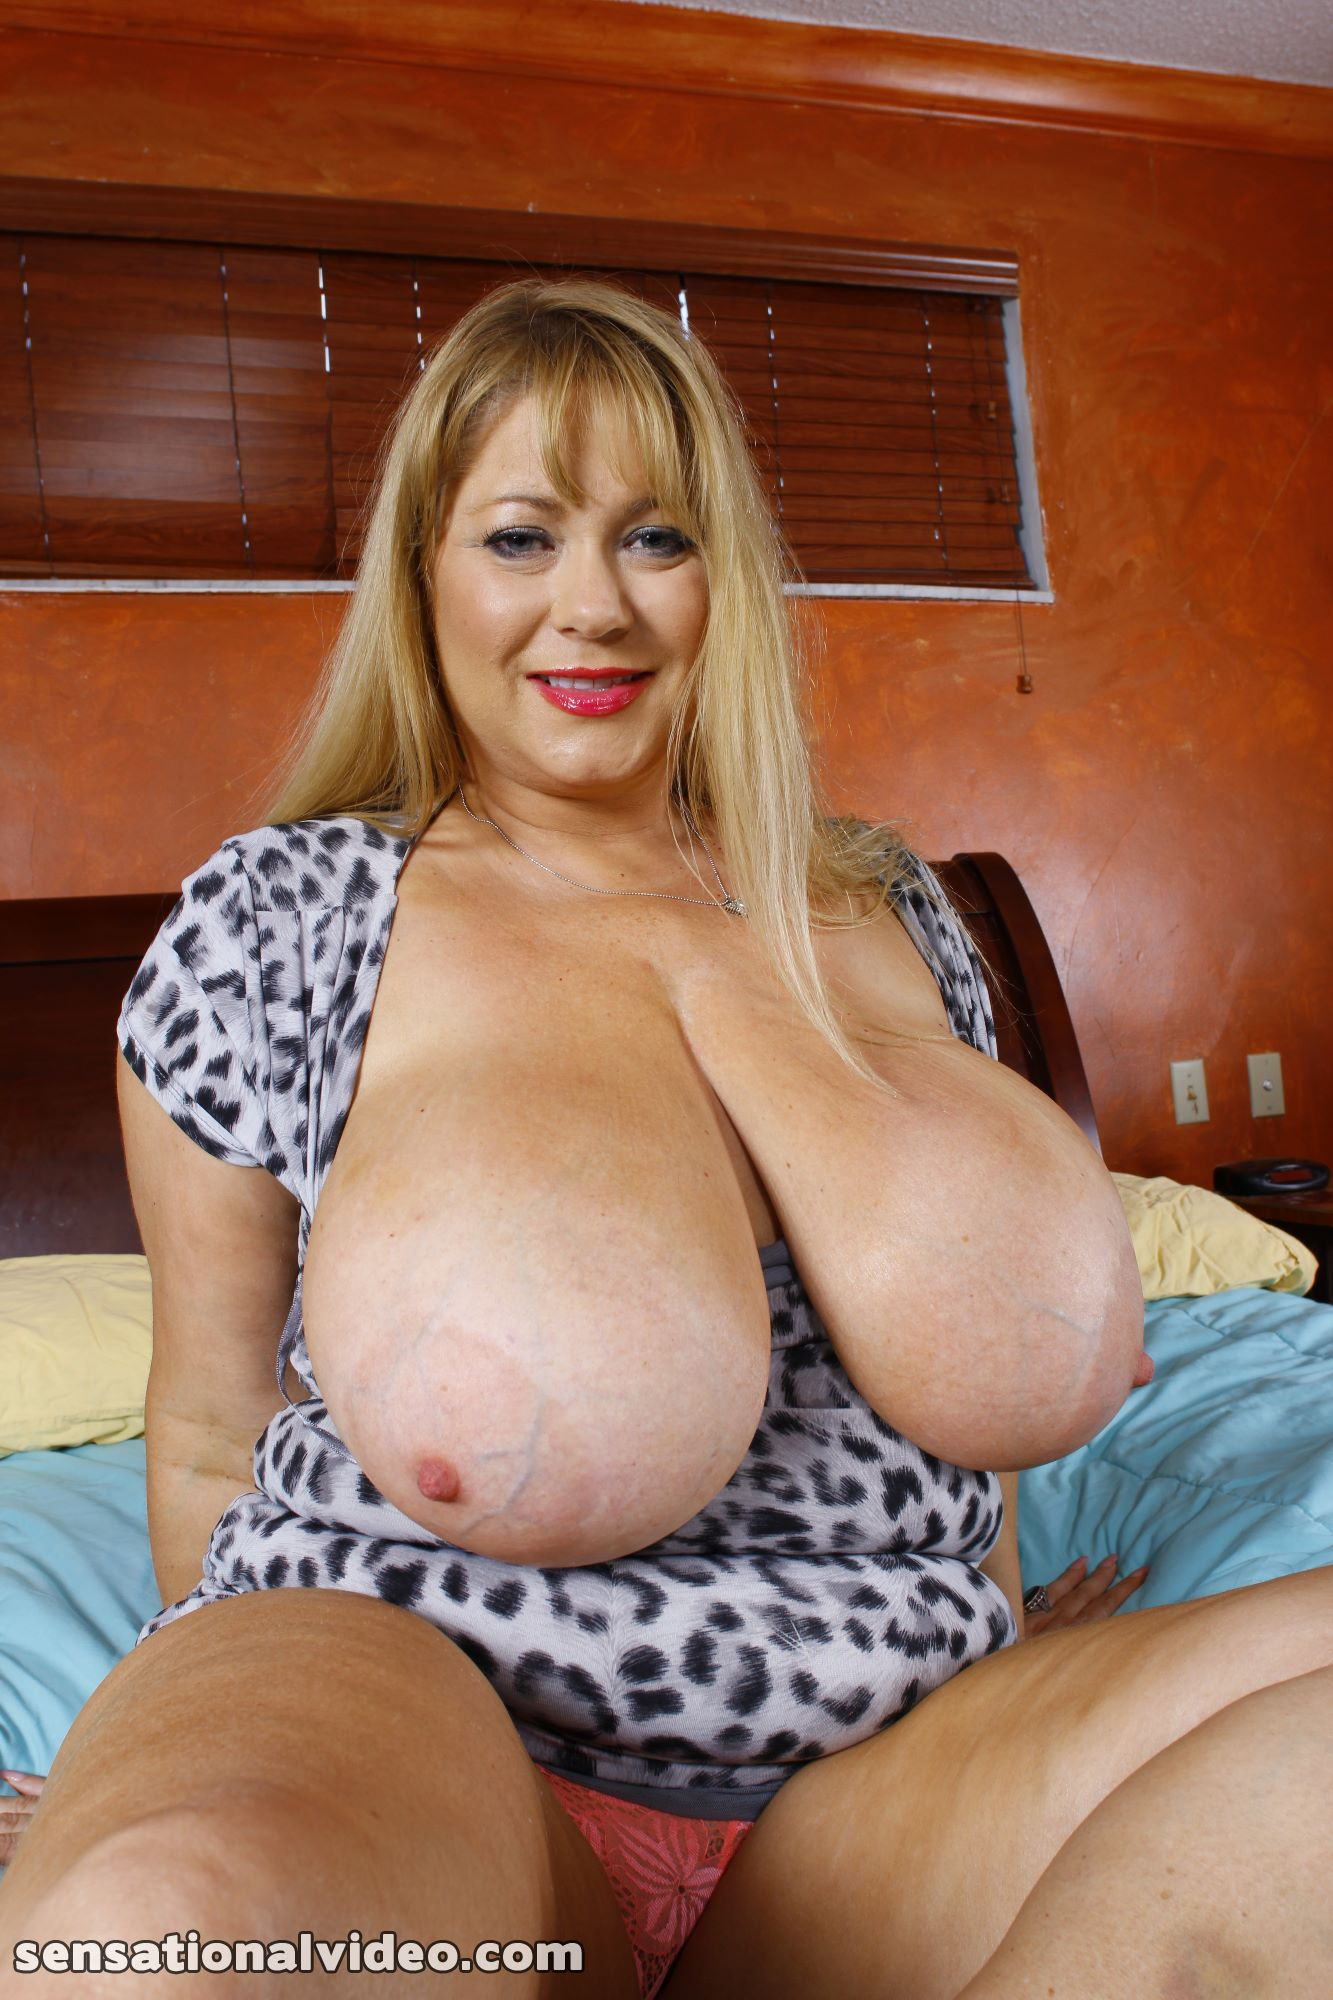 lesgalls spicytitties plumperpass gal538 pic 7